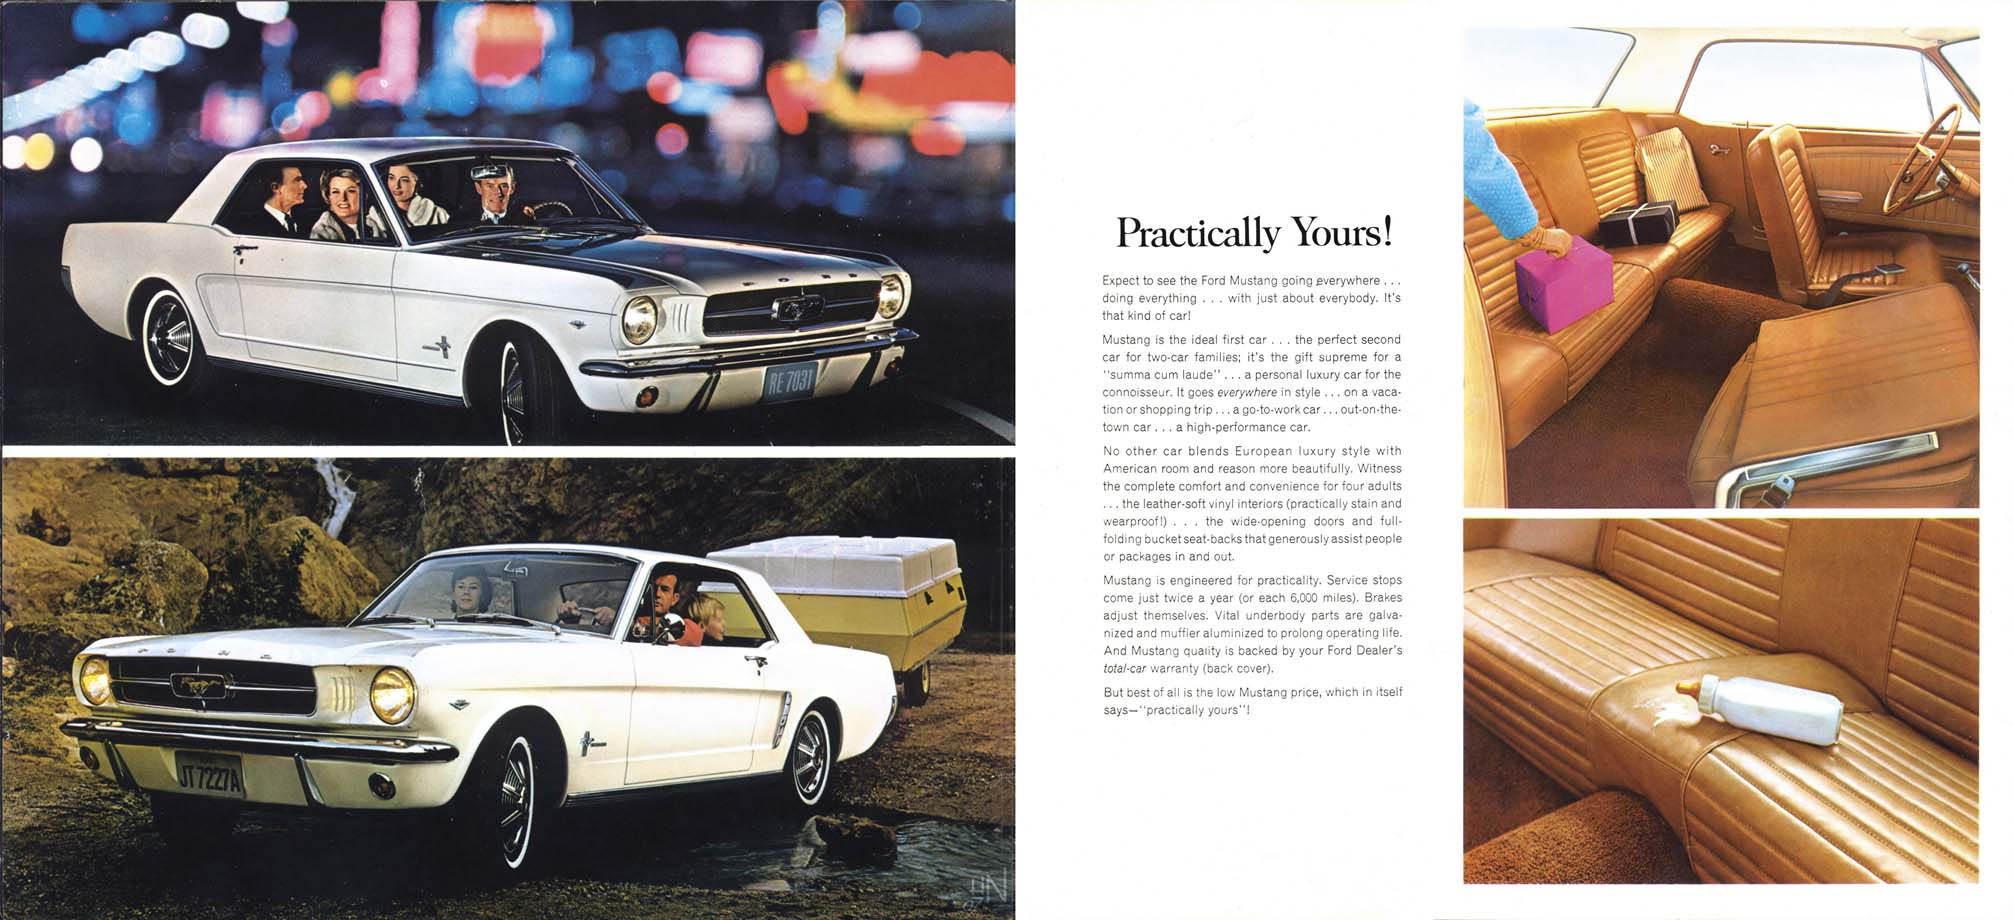 Mustang for 1964 - practically yours!